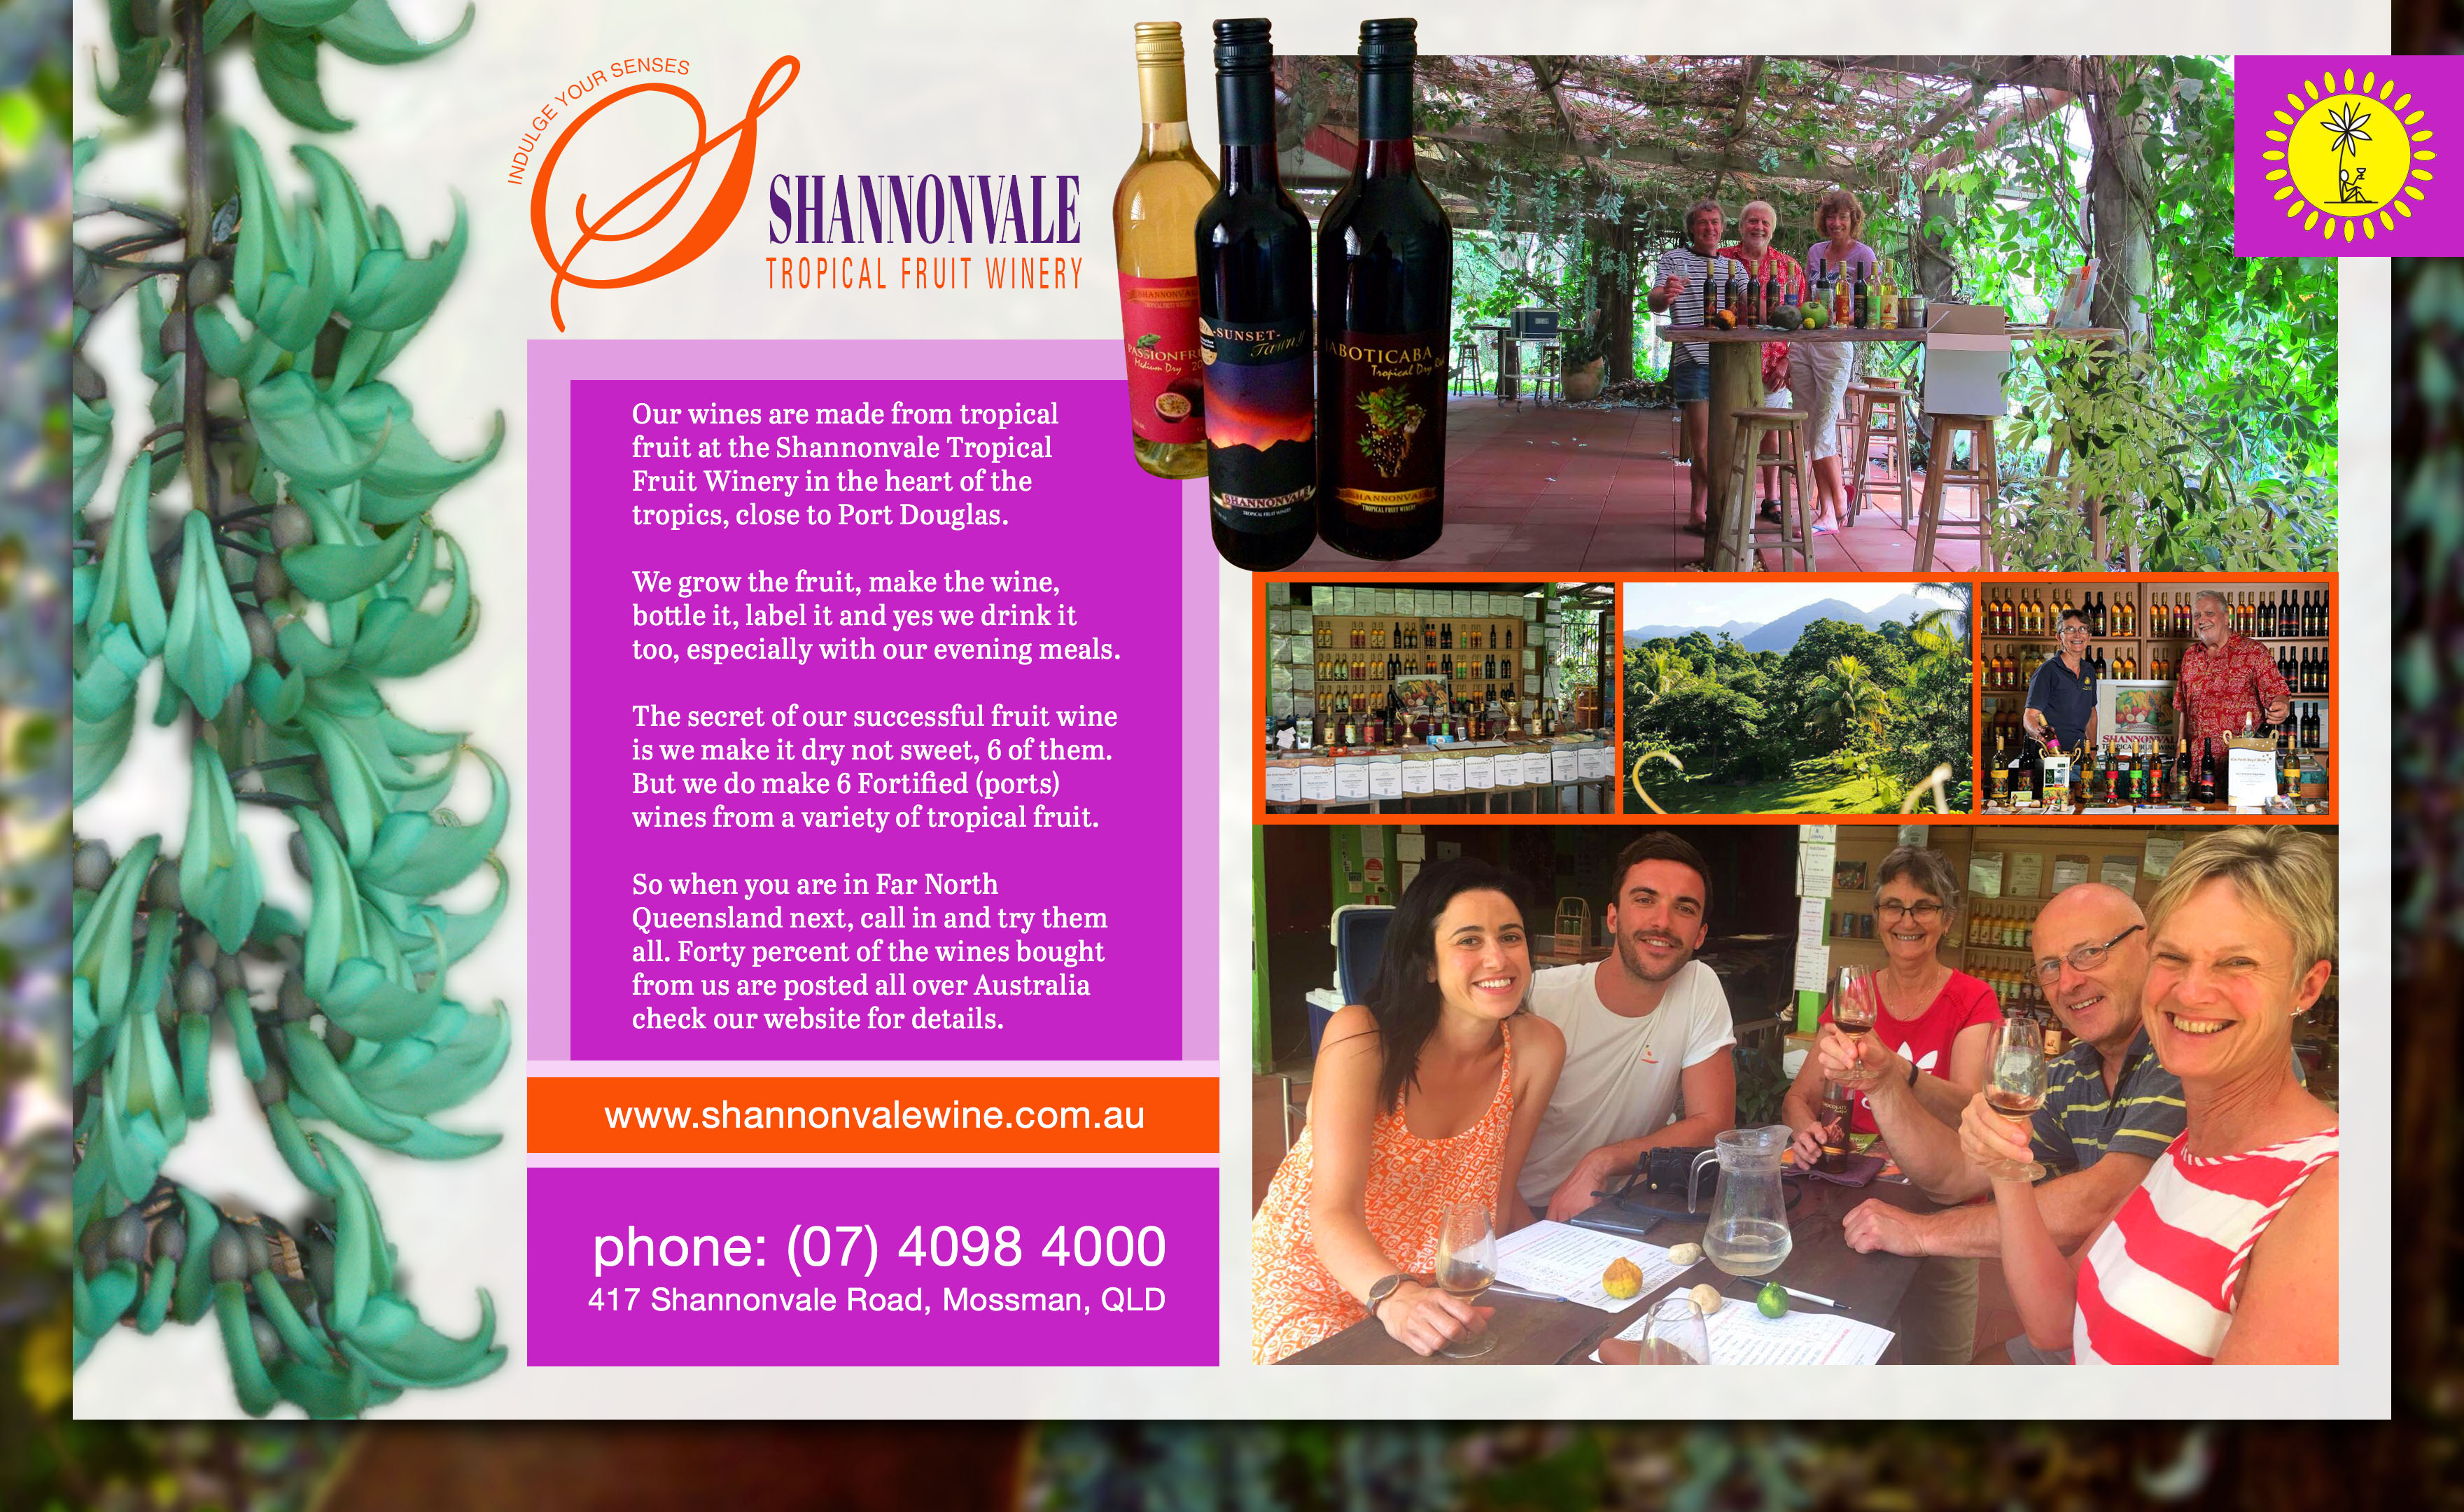 Shannovale Tropical Fruit Winery